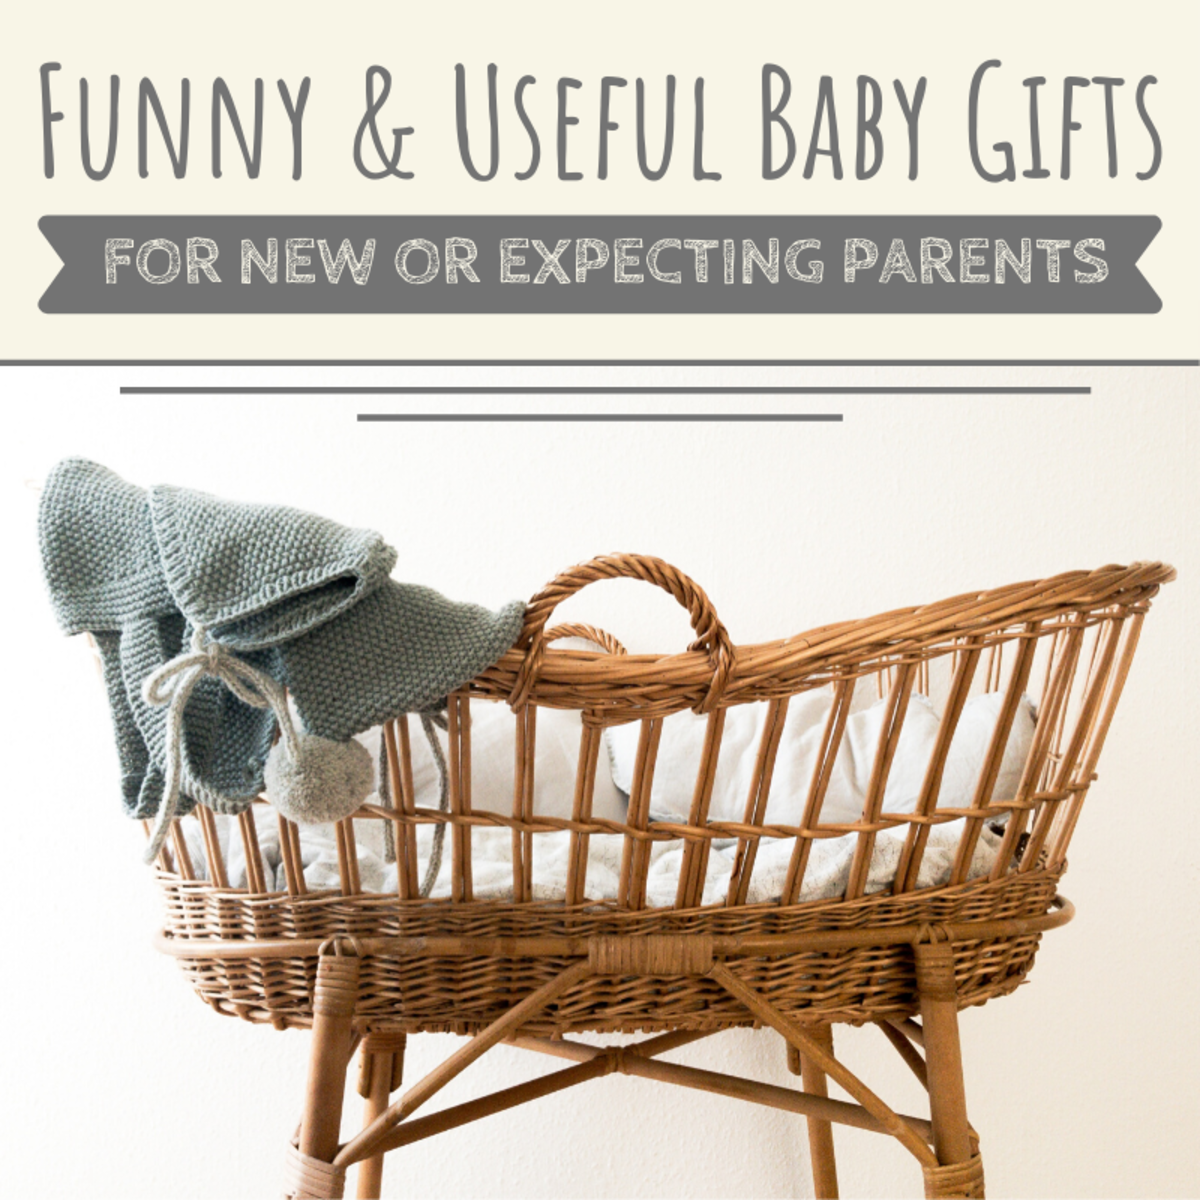 Liven up the baby shower or Christmas celebration by surprising the parents-to-be with one of these funny, original, and practical baby gifts.